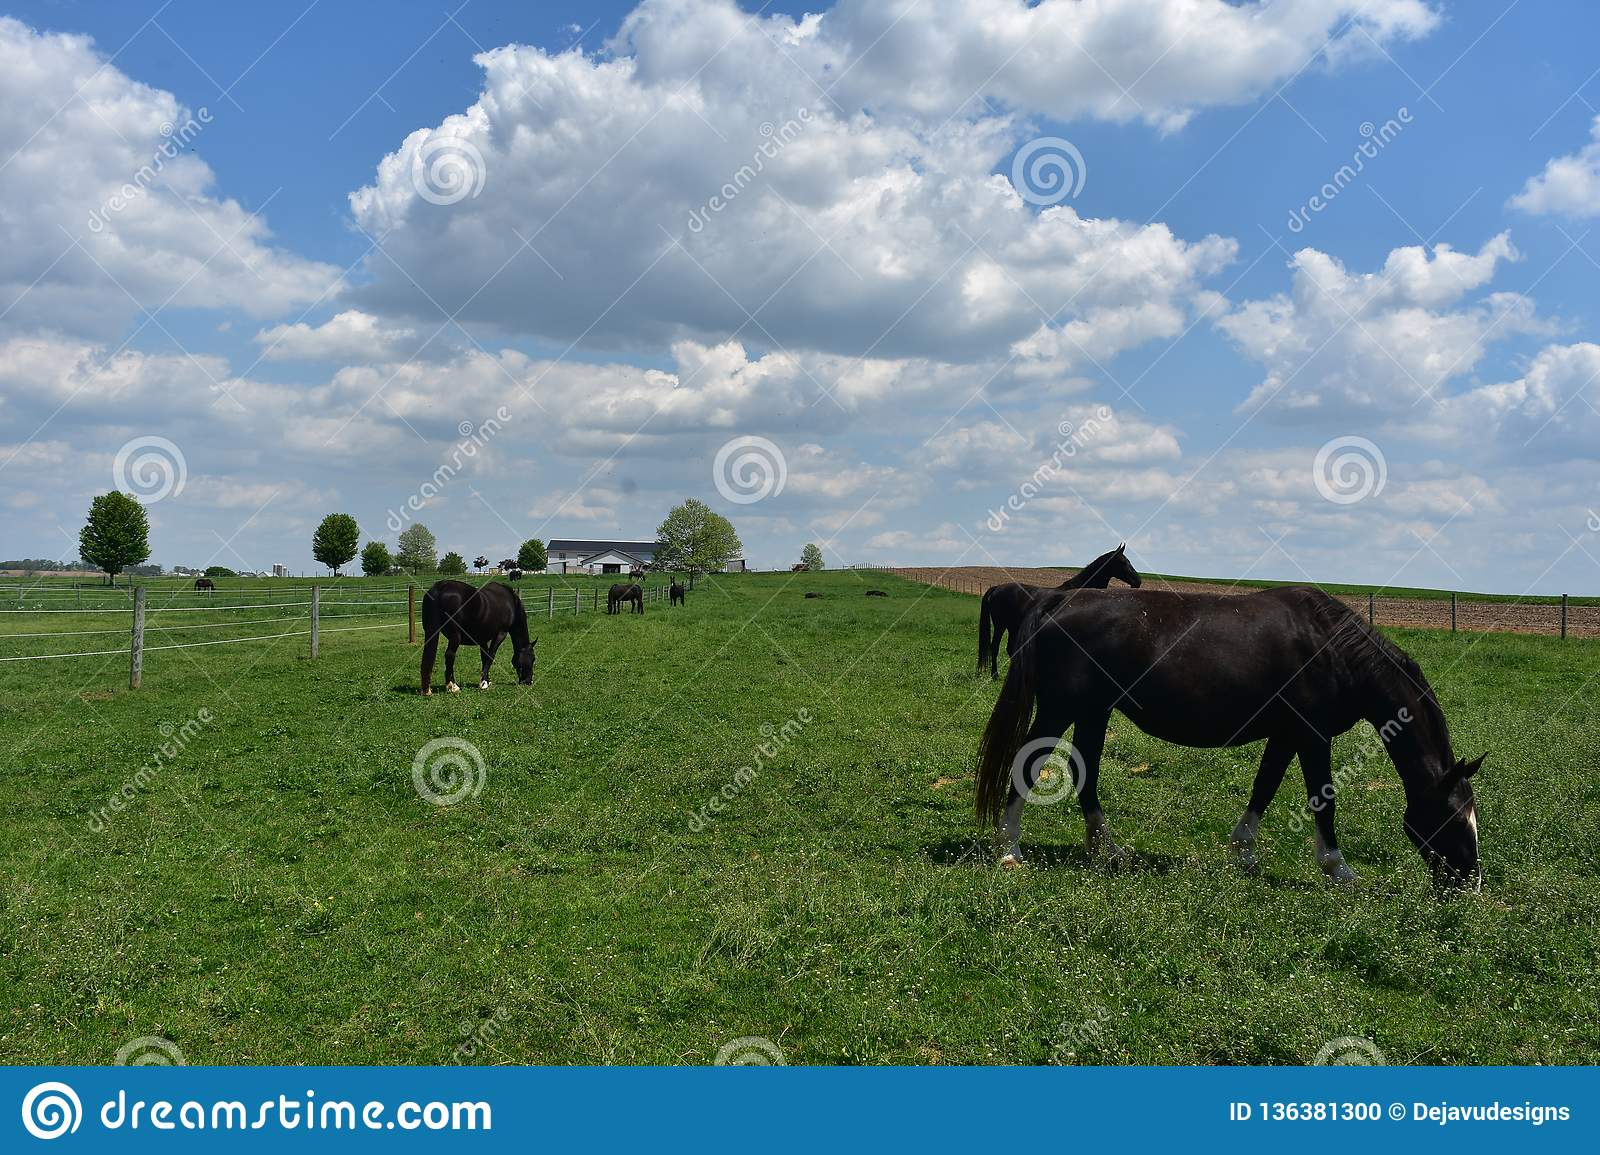 Grazing Herd of Black Horses on a Farm